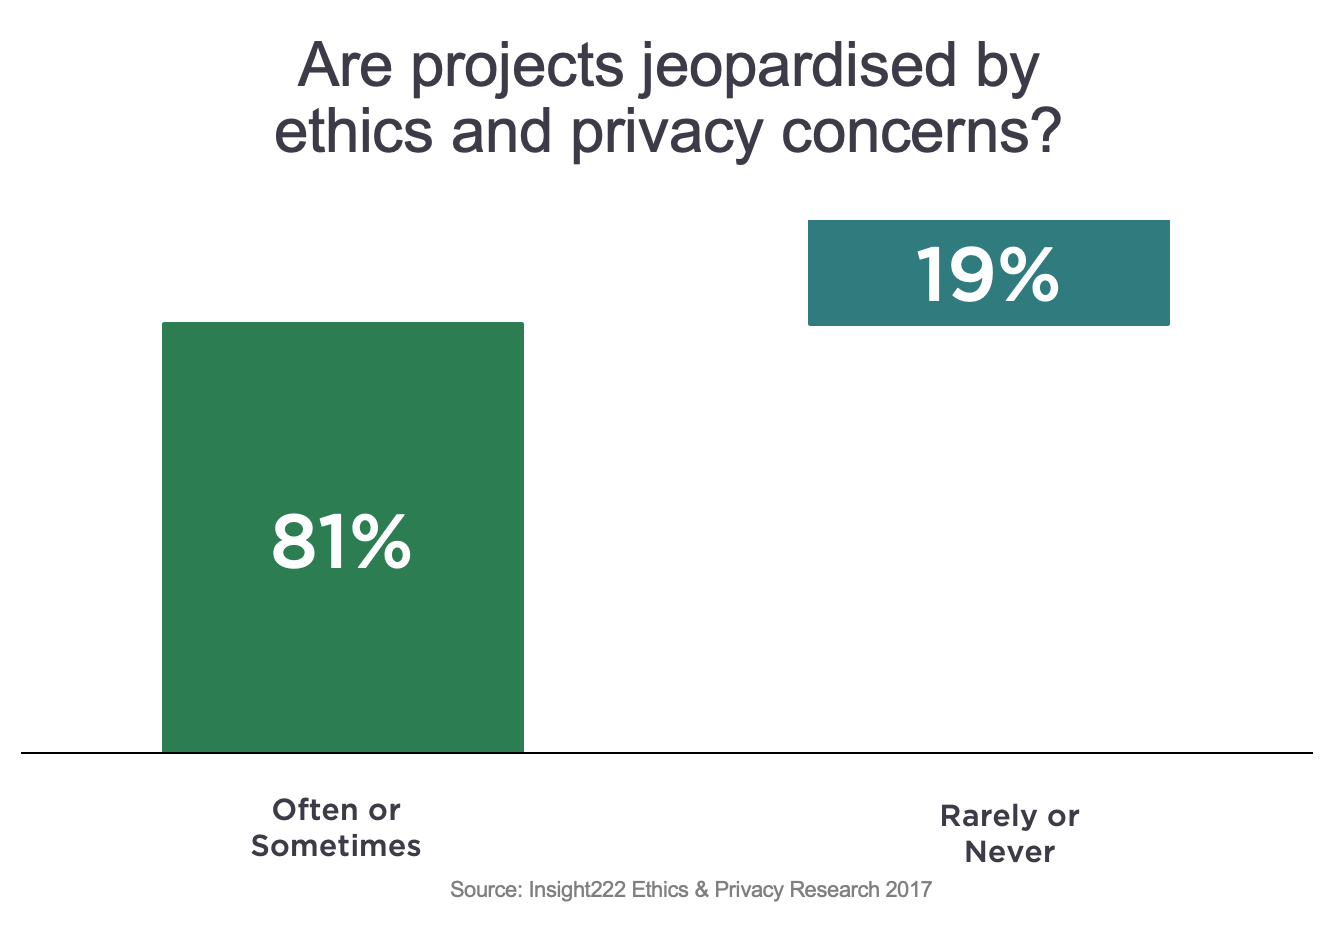 Figure 1: 81% of People analytics projects are jeopardised 'Often or sometimes' by Ethics & privacy concerns